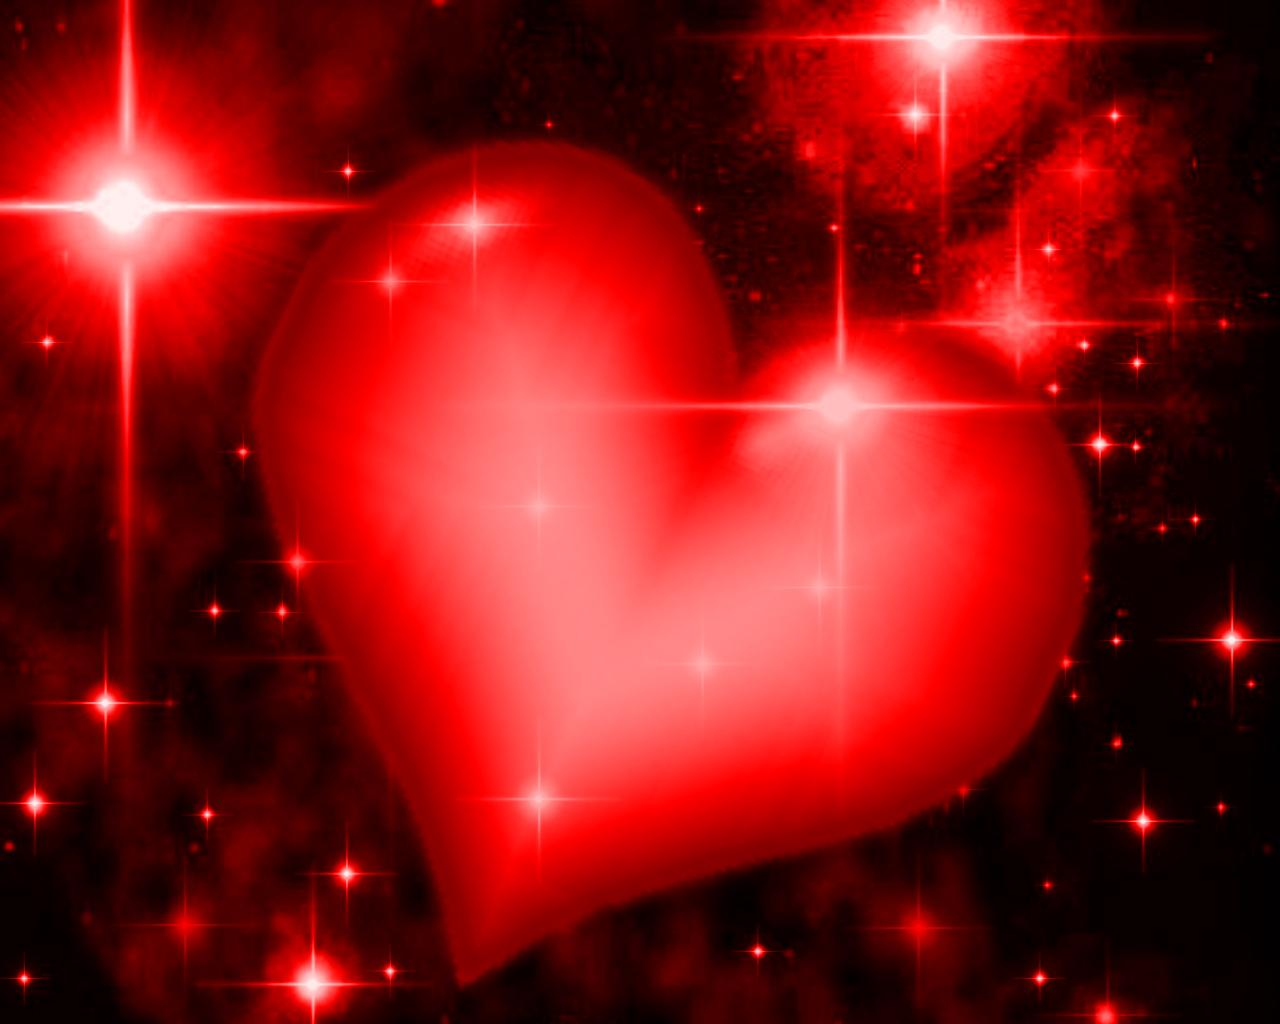 Background Wallpaper Image: Red Heart With Starry Background